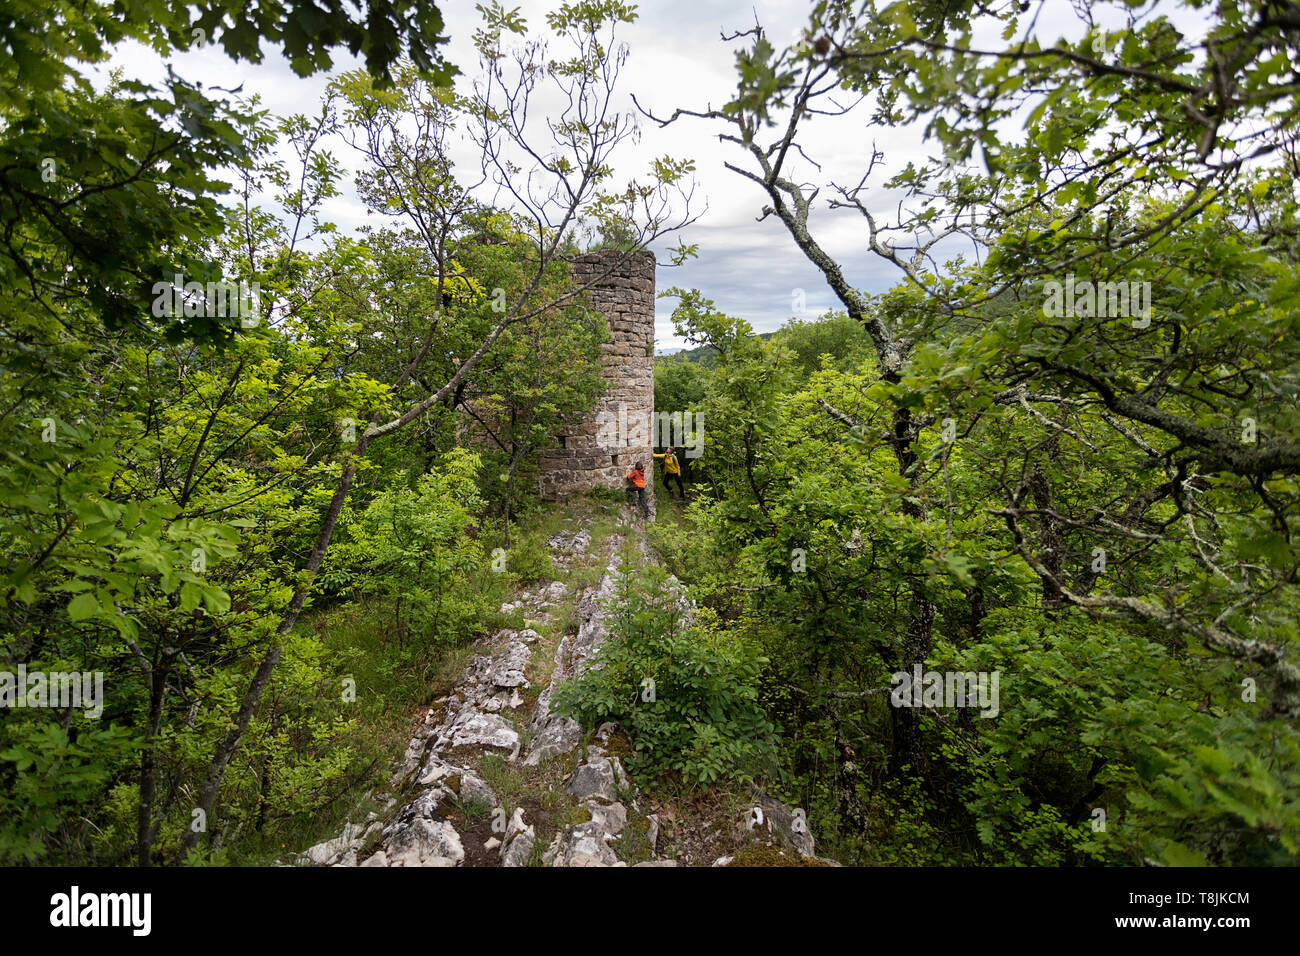 Mother and son standing by ruins of historic tower in thick green forest. Ruins of old venetian defense stone tower in dense wood. Pasjak, Slovenia - Stock Image